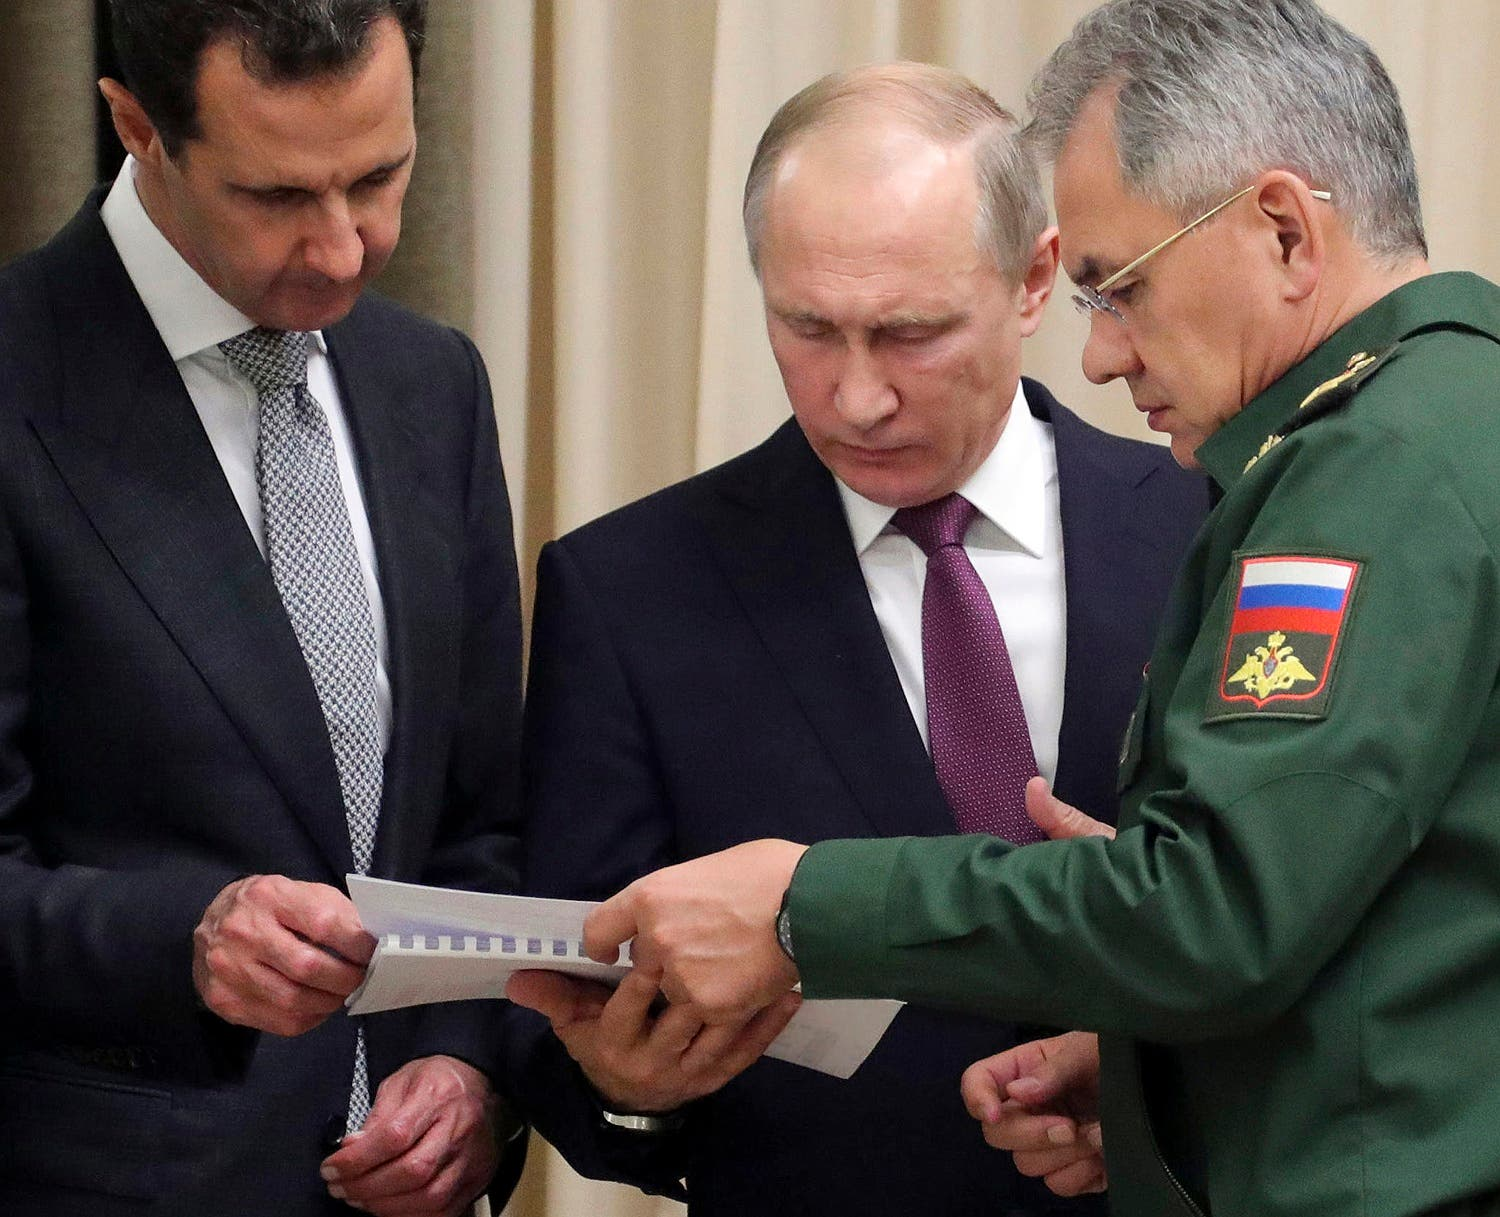 Putin has met with Assad ahead of a summit between Russia, Turkey and Iran and a new round of Syria peace talks in Geneva, Russian and Syrian state media reported Tuesday. (AP)